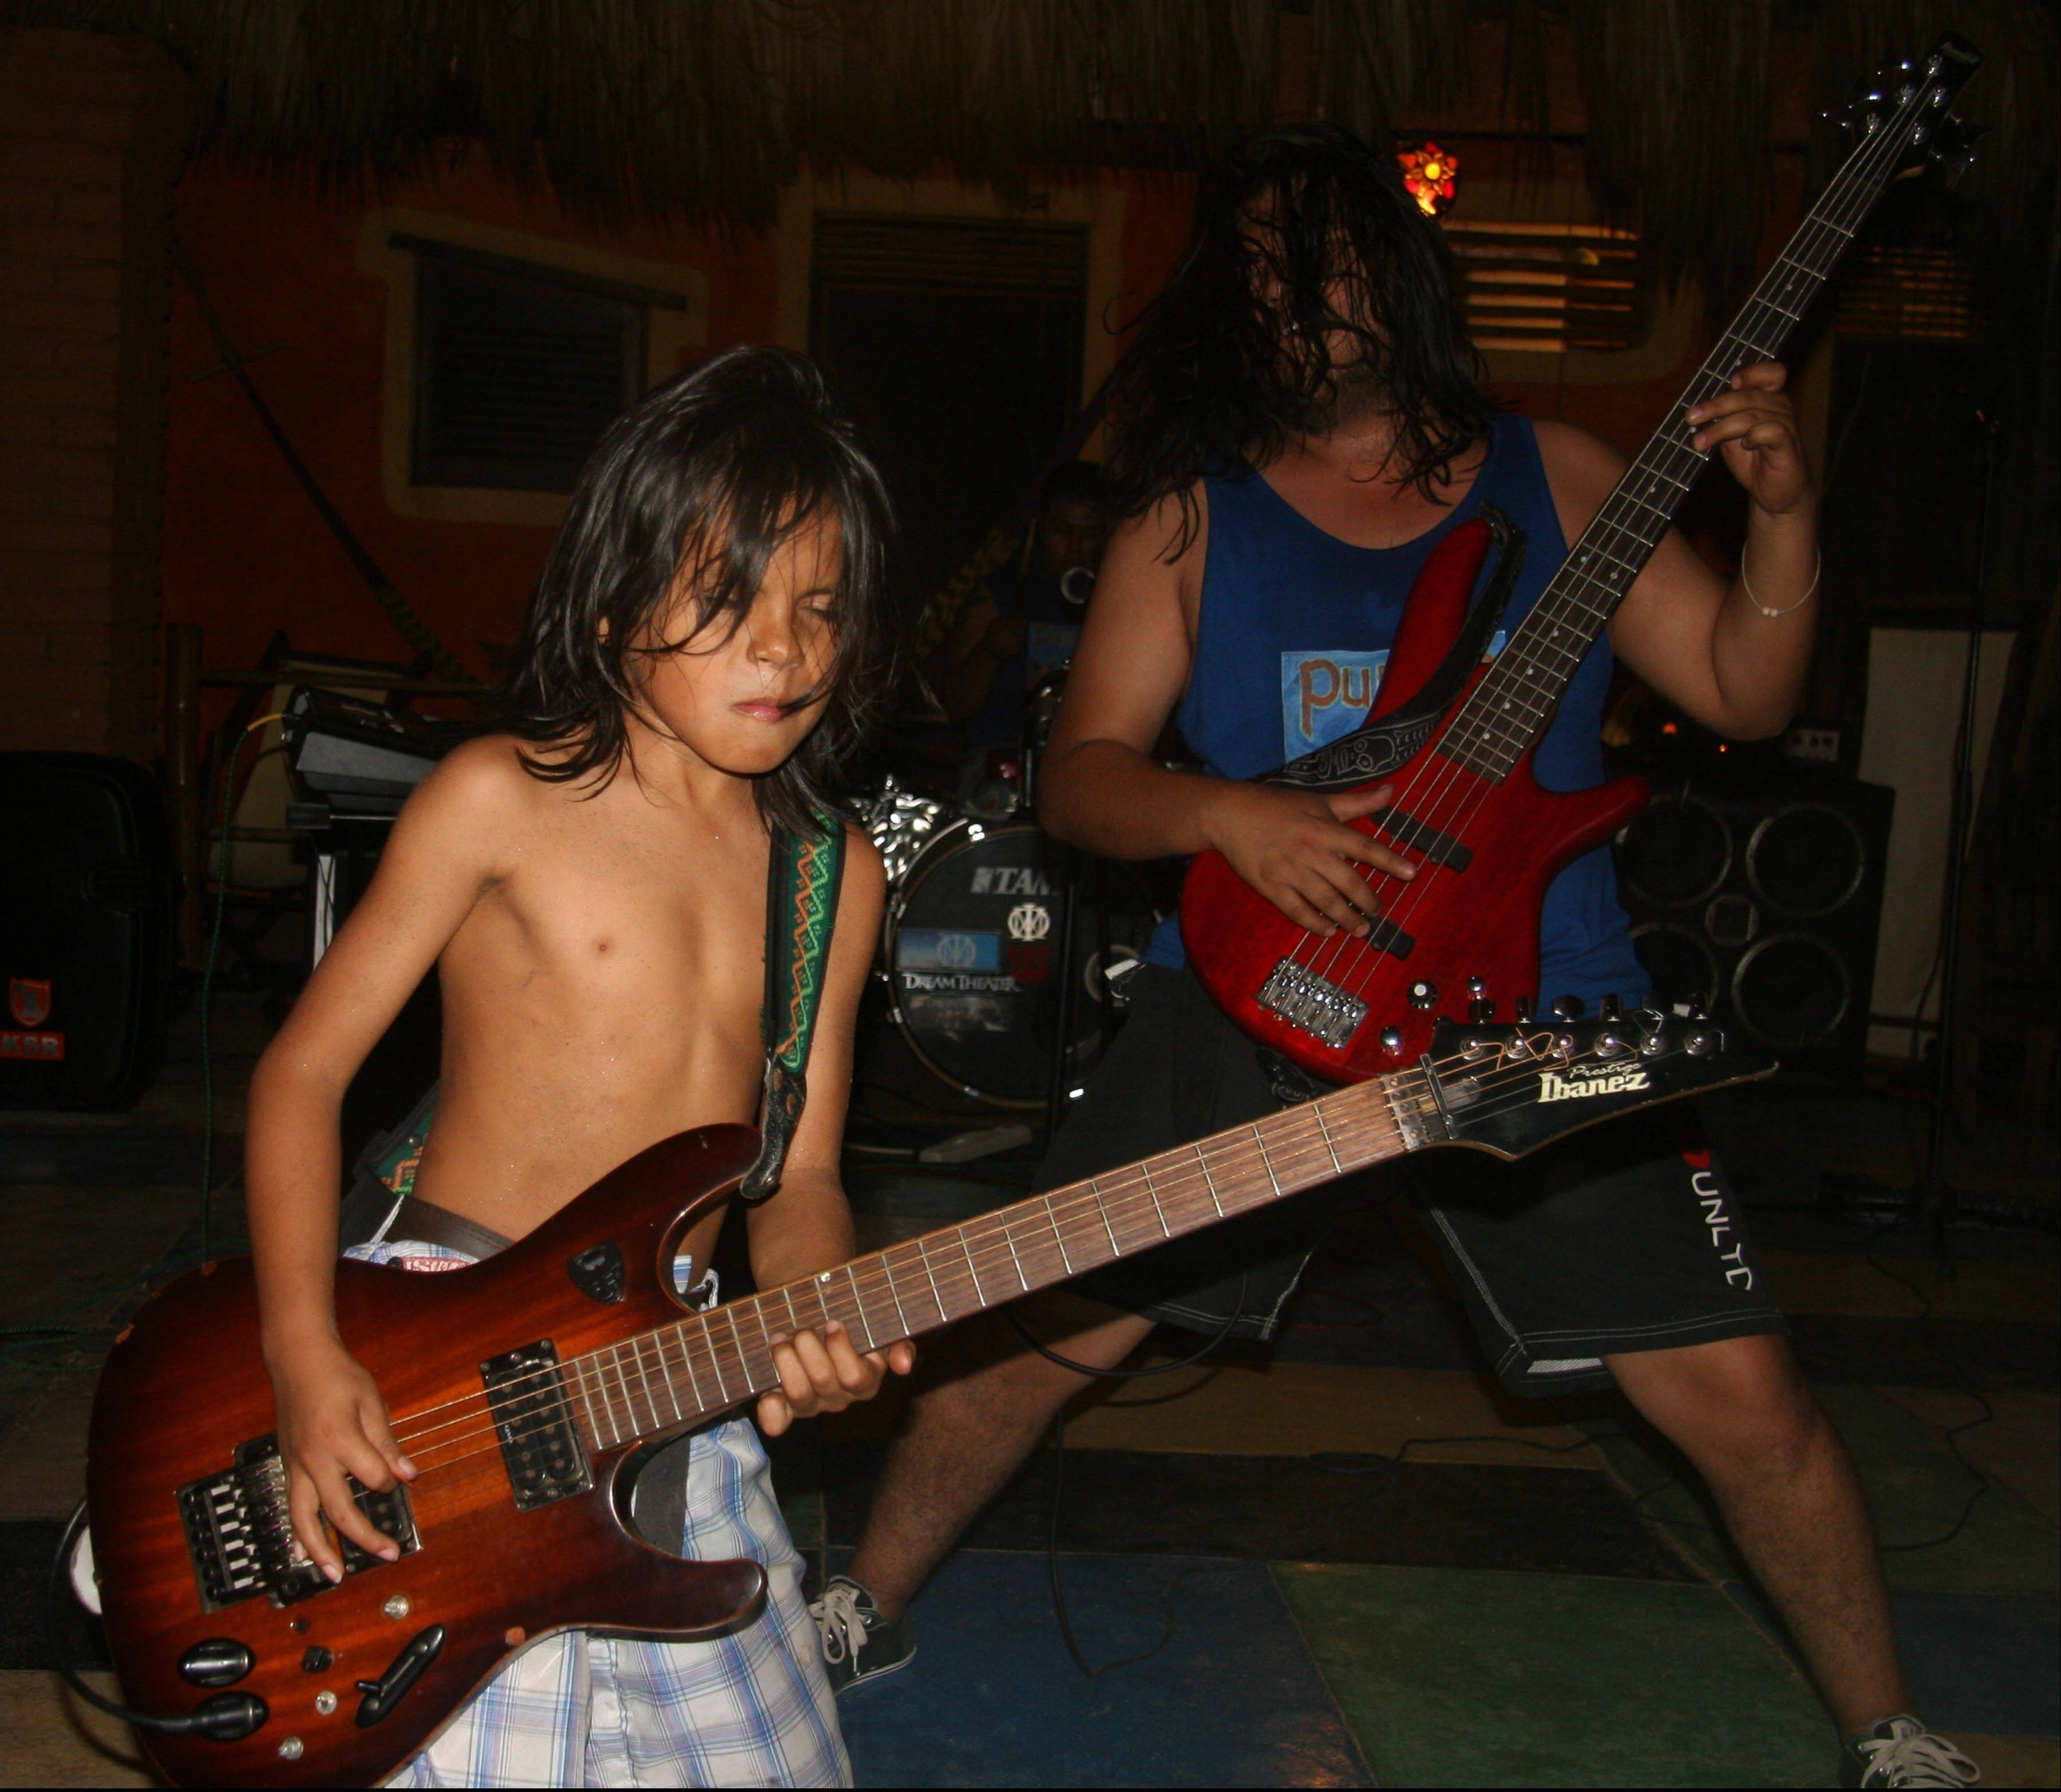 Child guitar prodigy Cainn Cruz, left, performs at the Posada Mexico restaurant in Zipolite, Mexico. The oceanfront restaurant offers a variety of live entertainment.